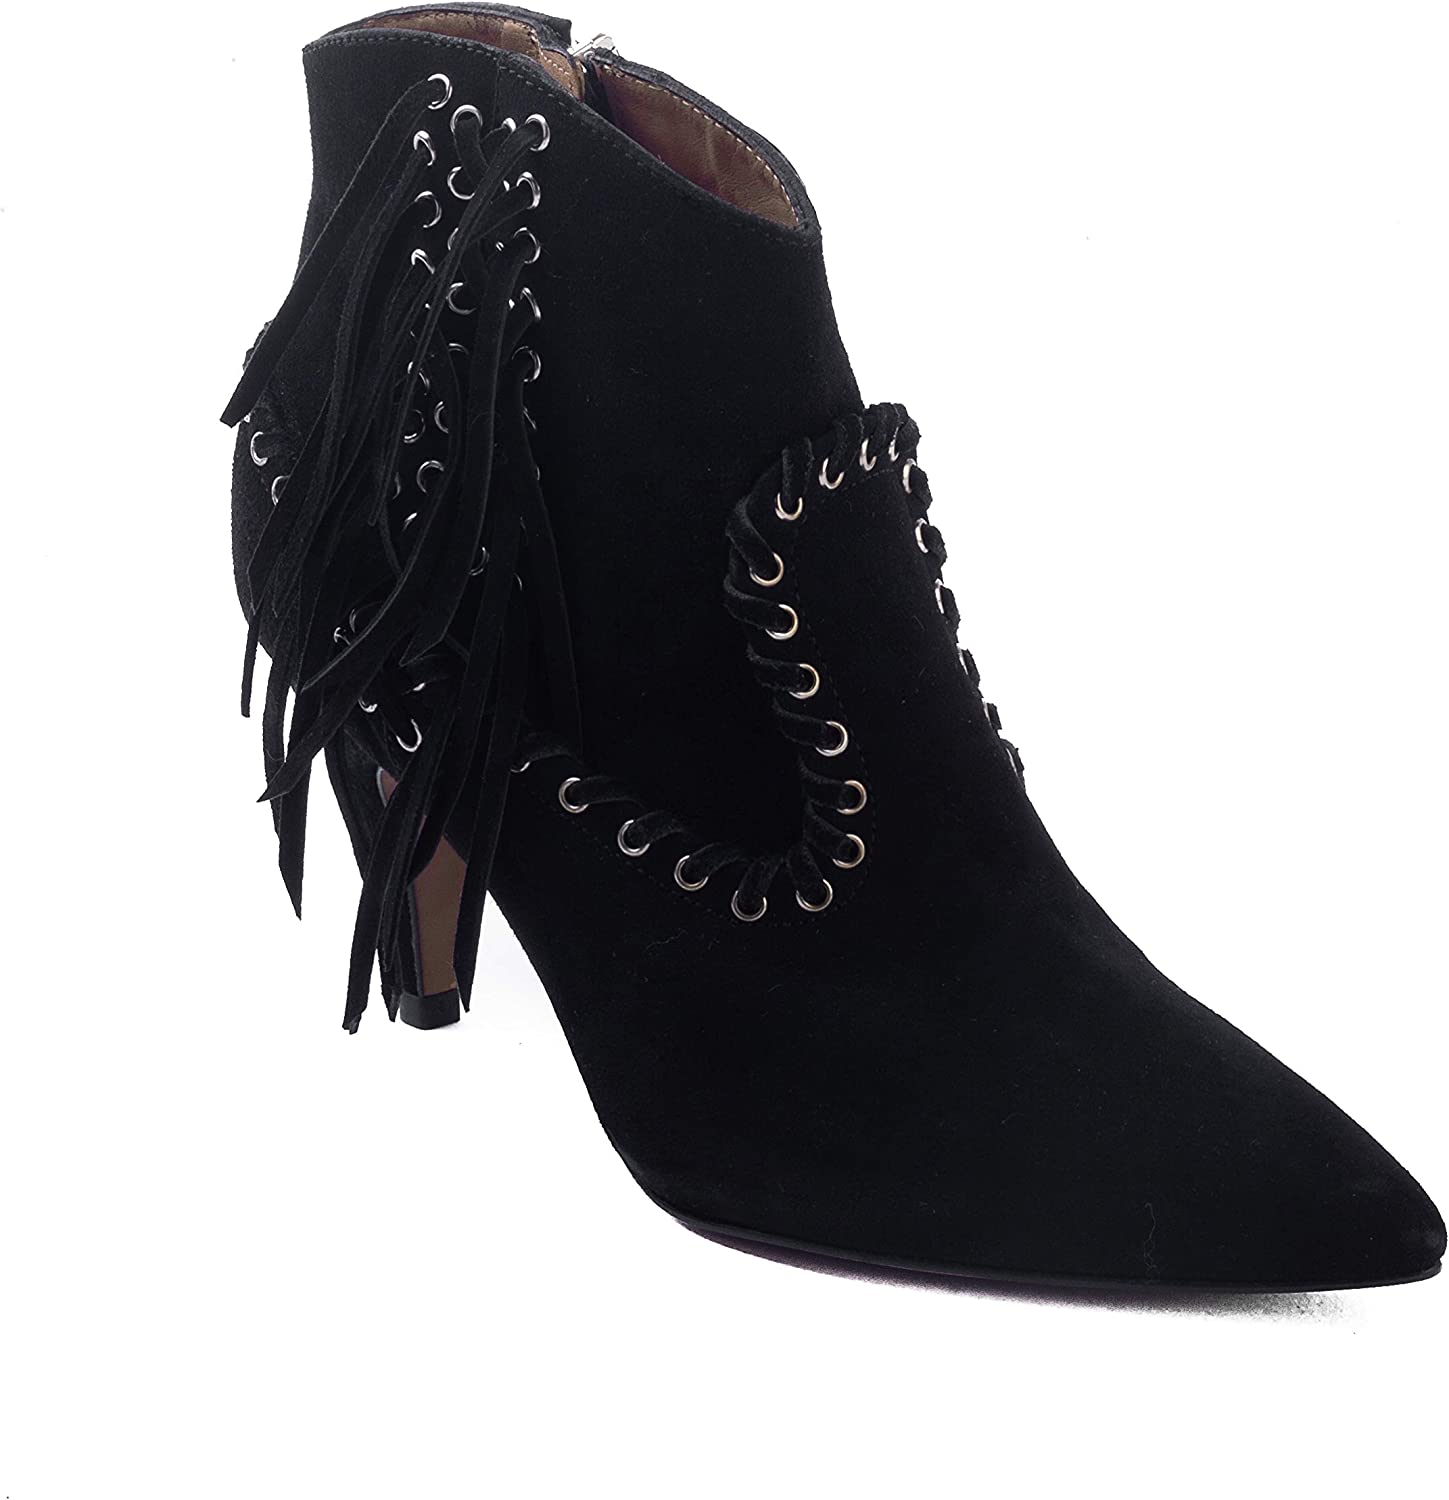 Iro Women's Nensy Suede Fringed Leather Booties shoes Black